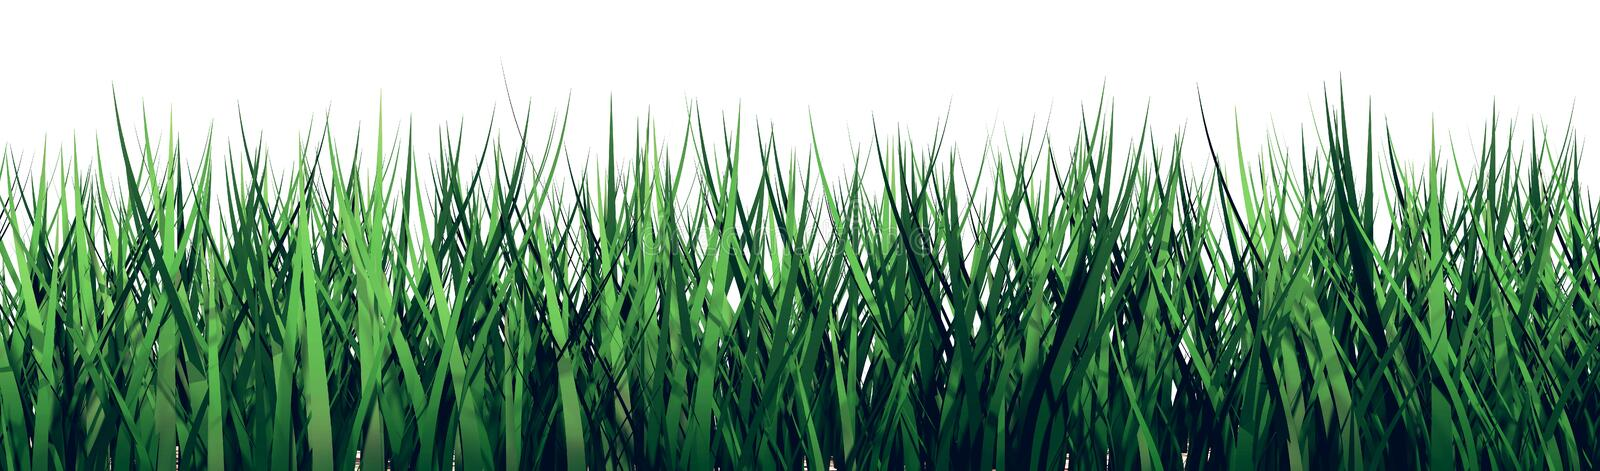 3D grass on a white background stock illustration